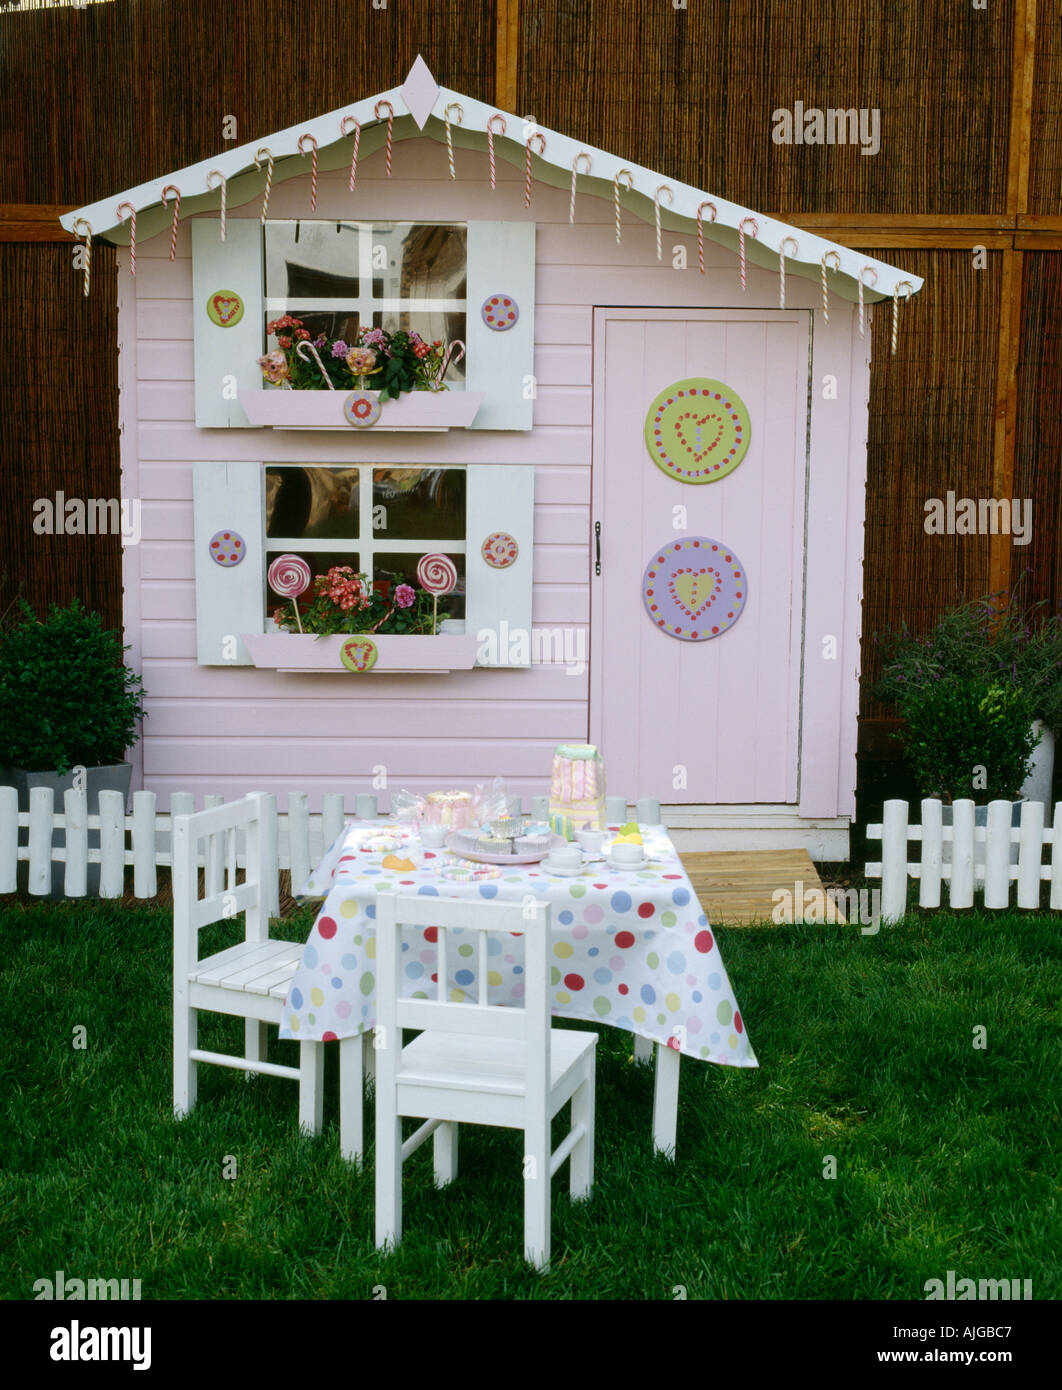 Children S Wendy House In Garden With Table And Chairs And